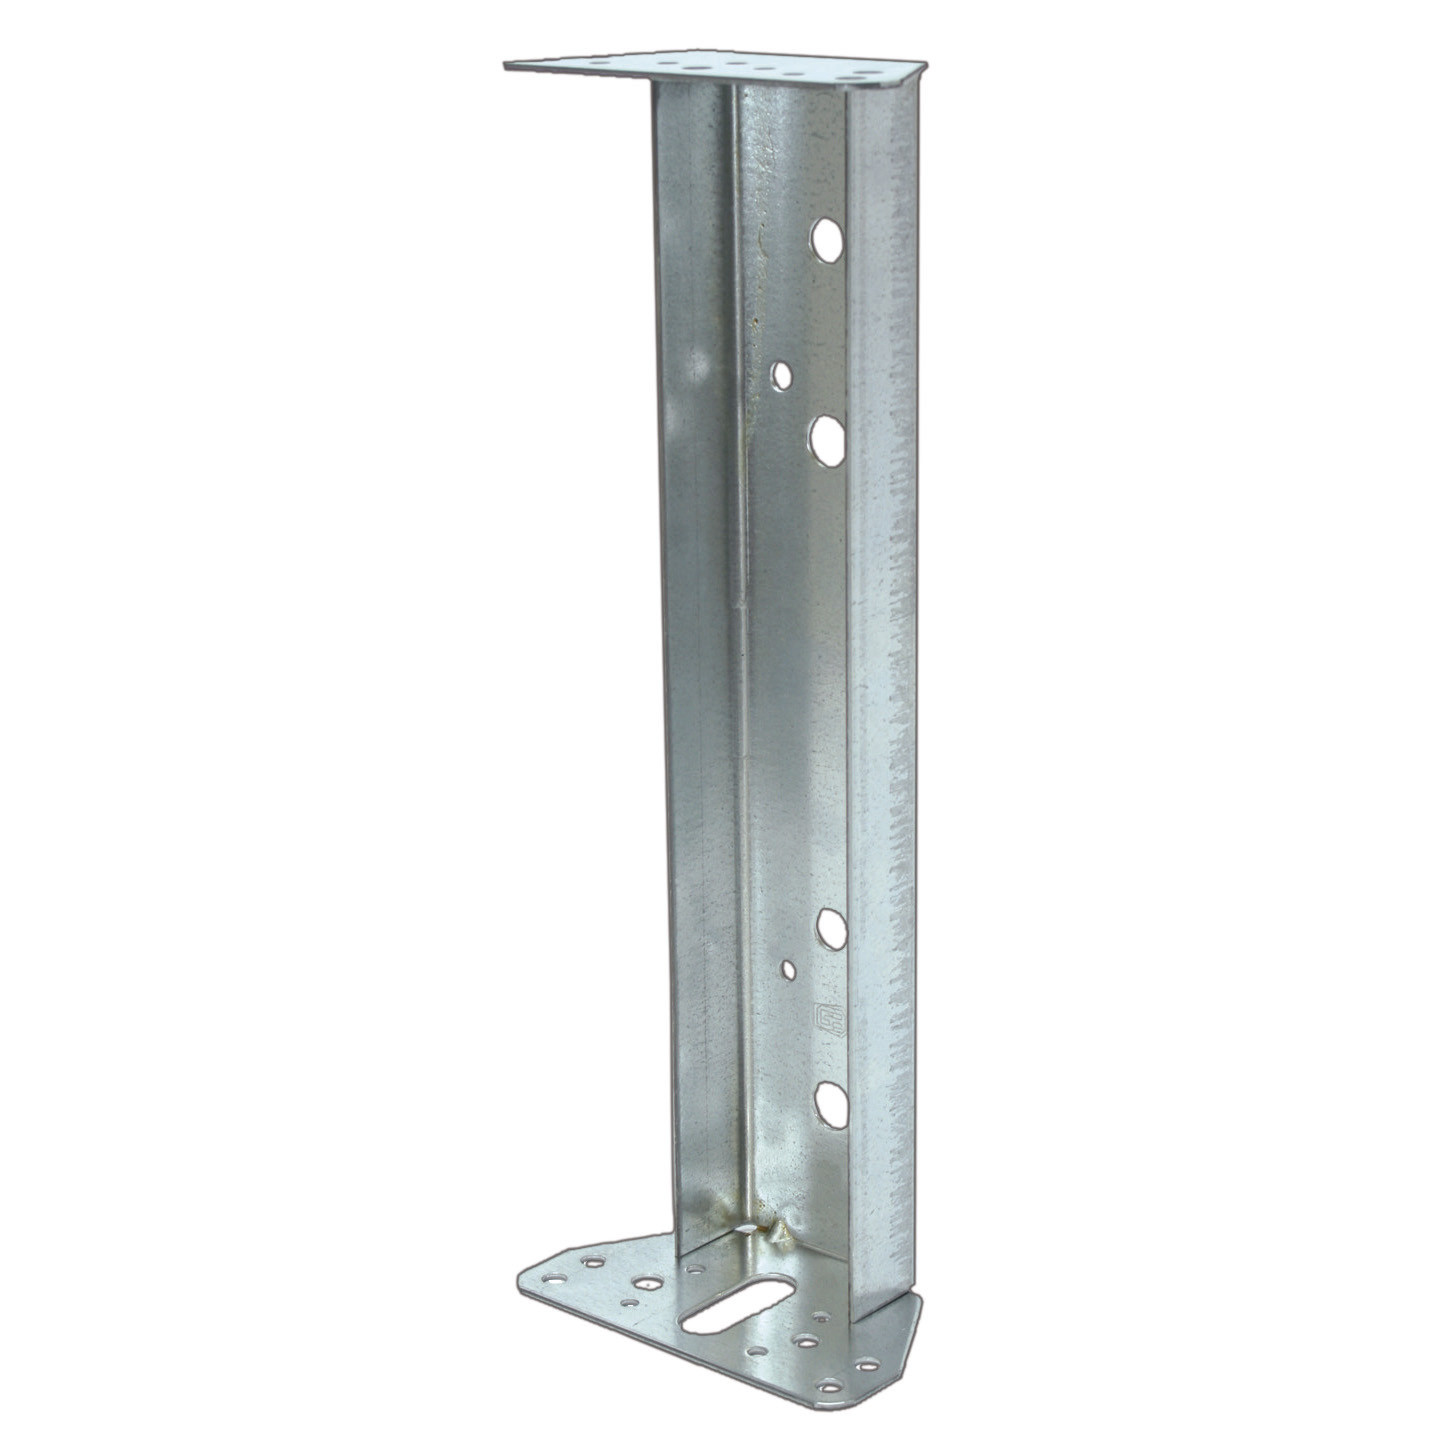 Window front frame support 60x70x280 115x2 ZM